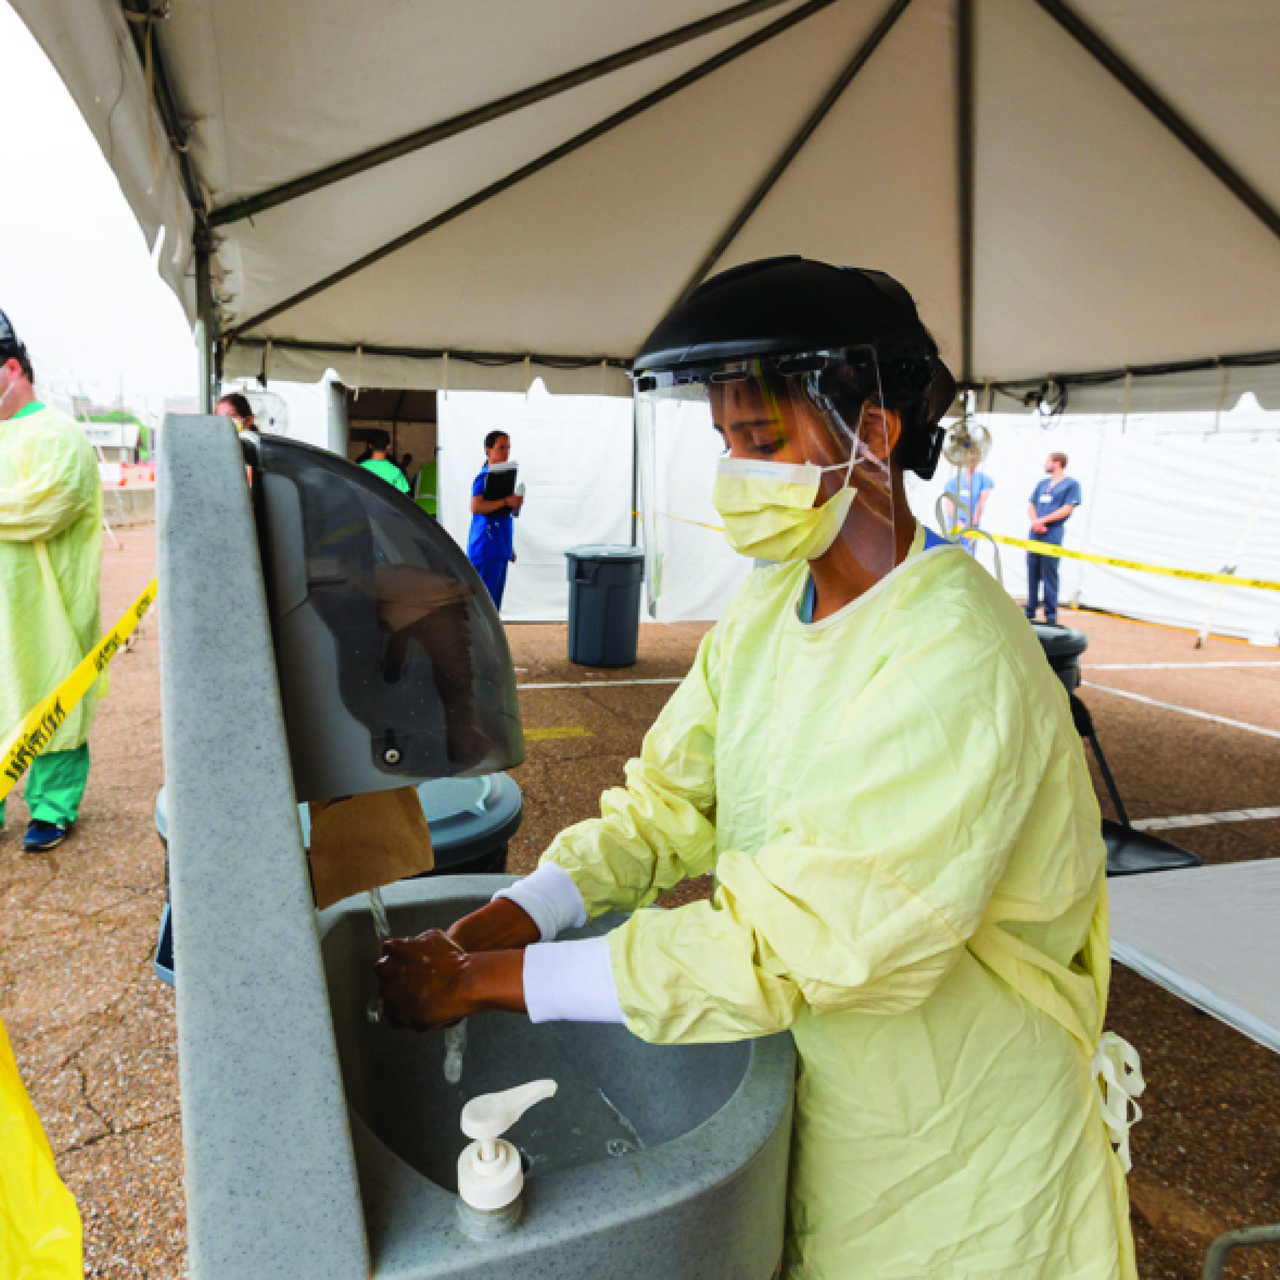 Medical professional washing hands in outdoor setting in fully protective gear